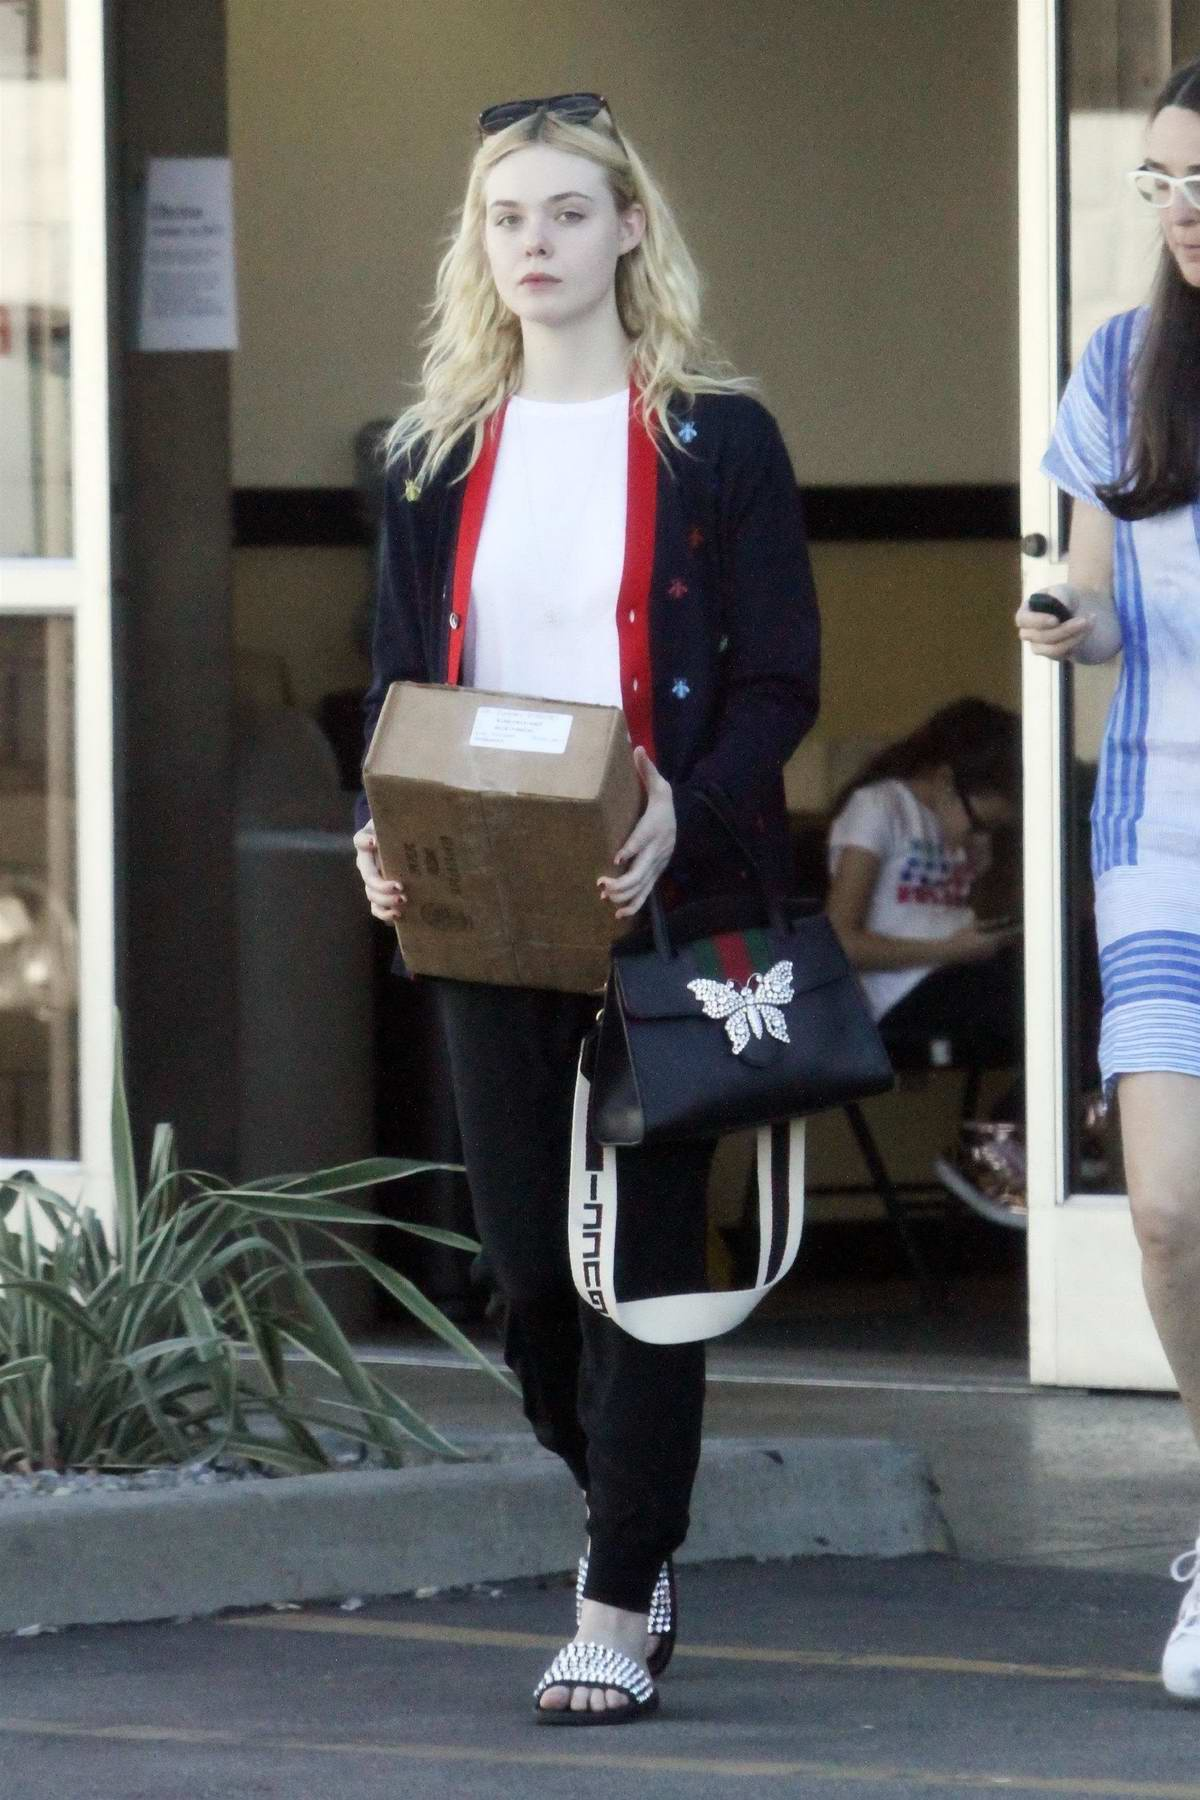 Elle Fanning and her mother stop by a UPS store to pick up a package in Studio City, Los Angeles